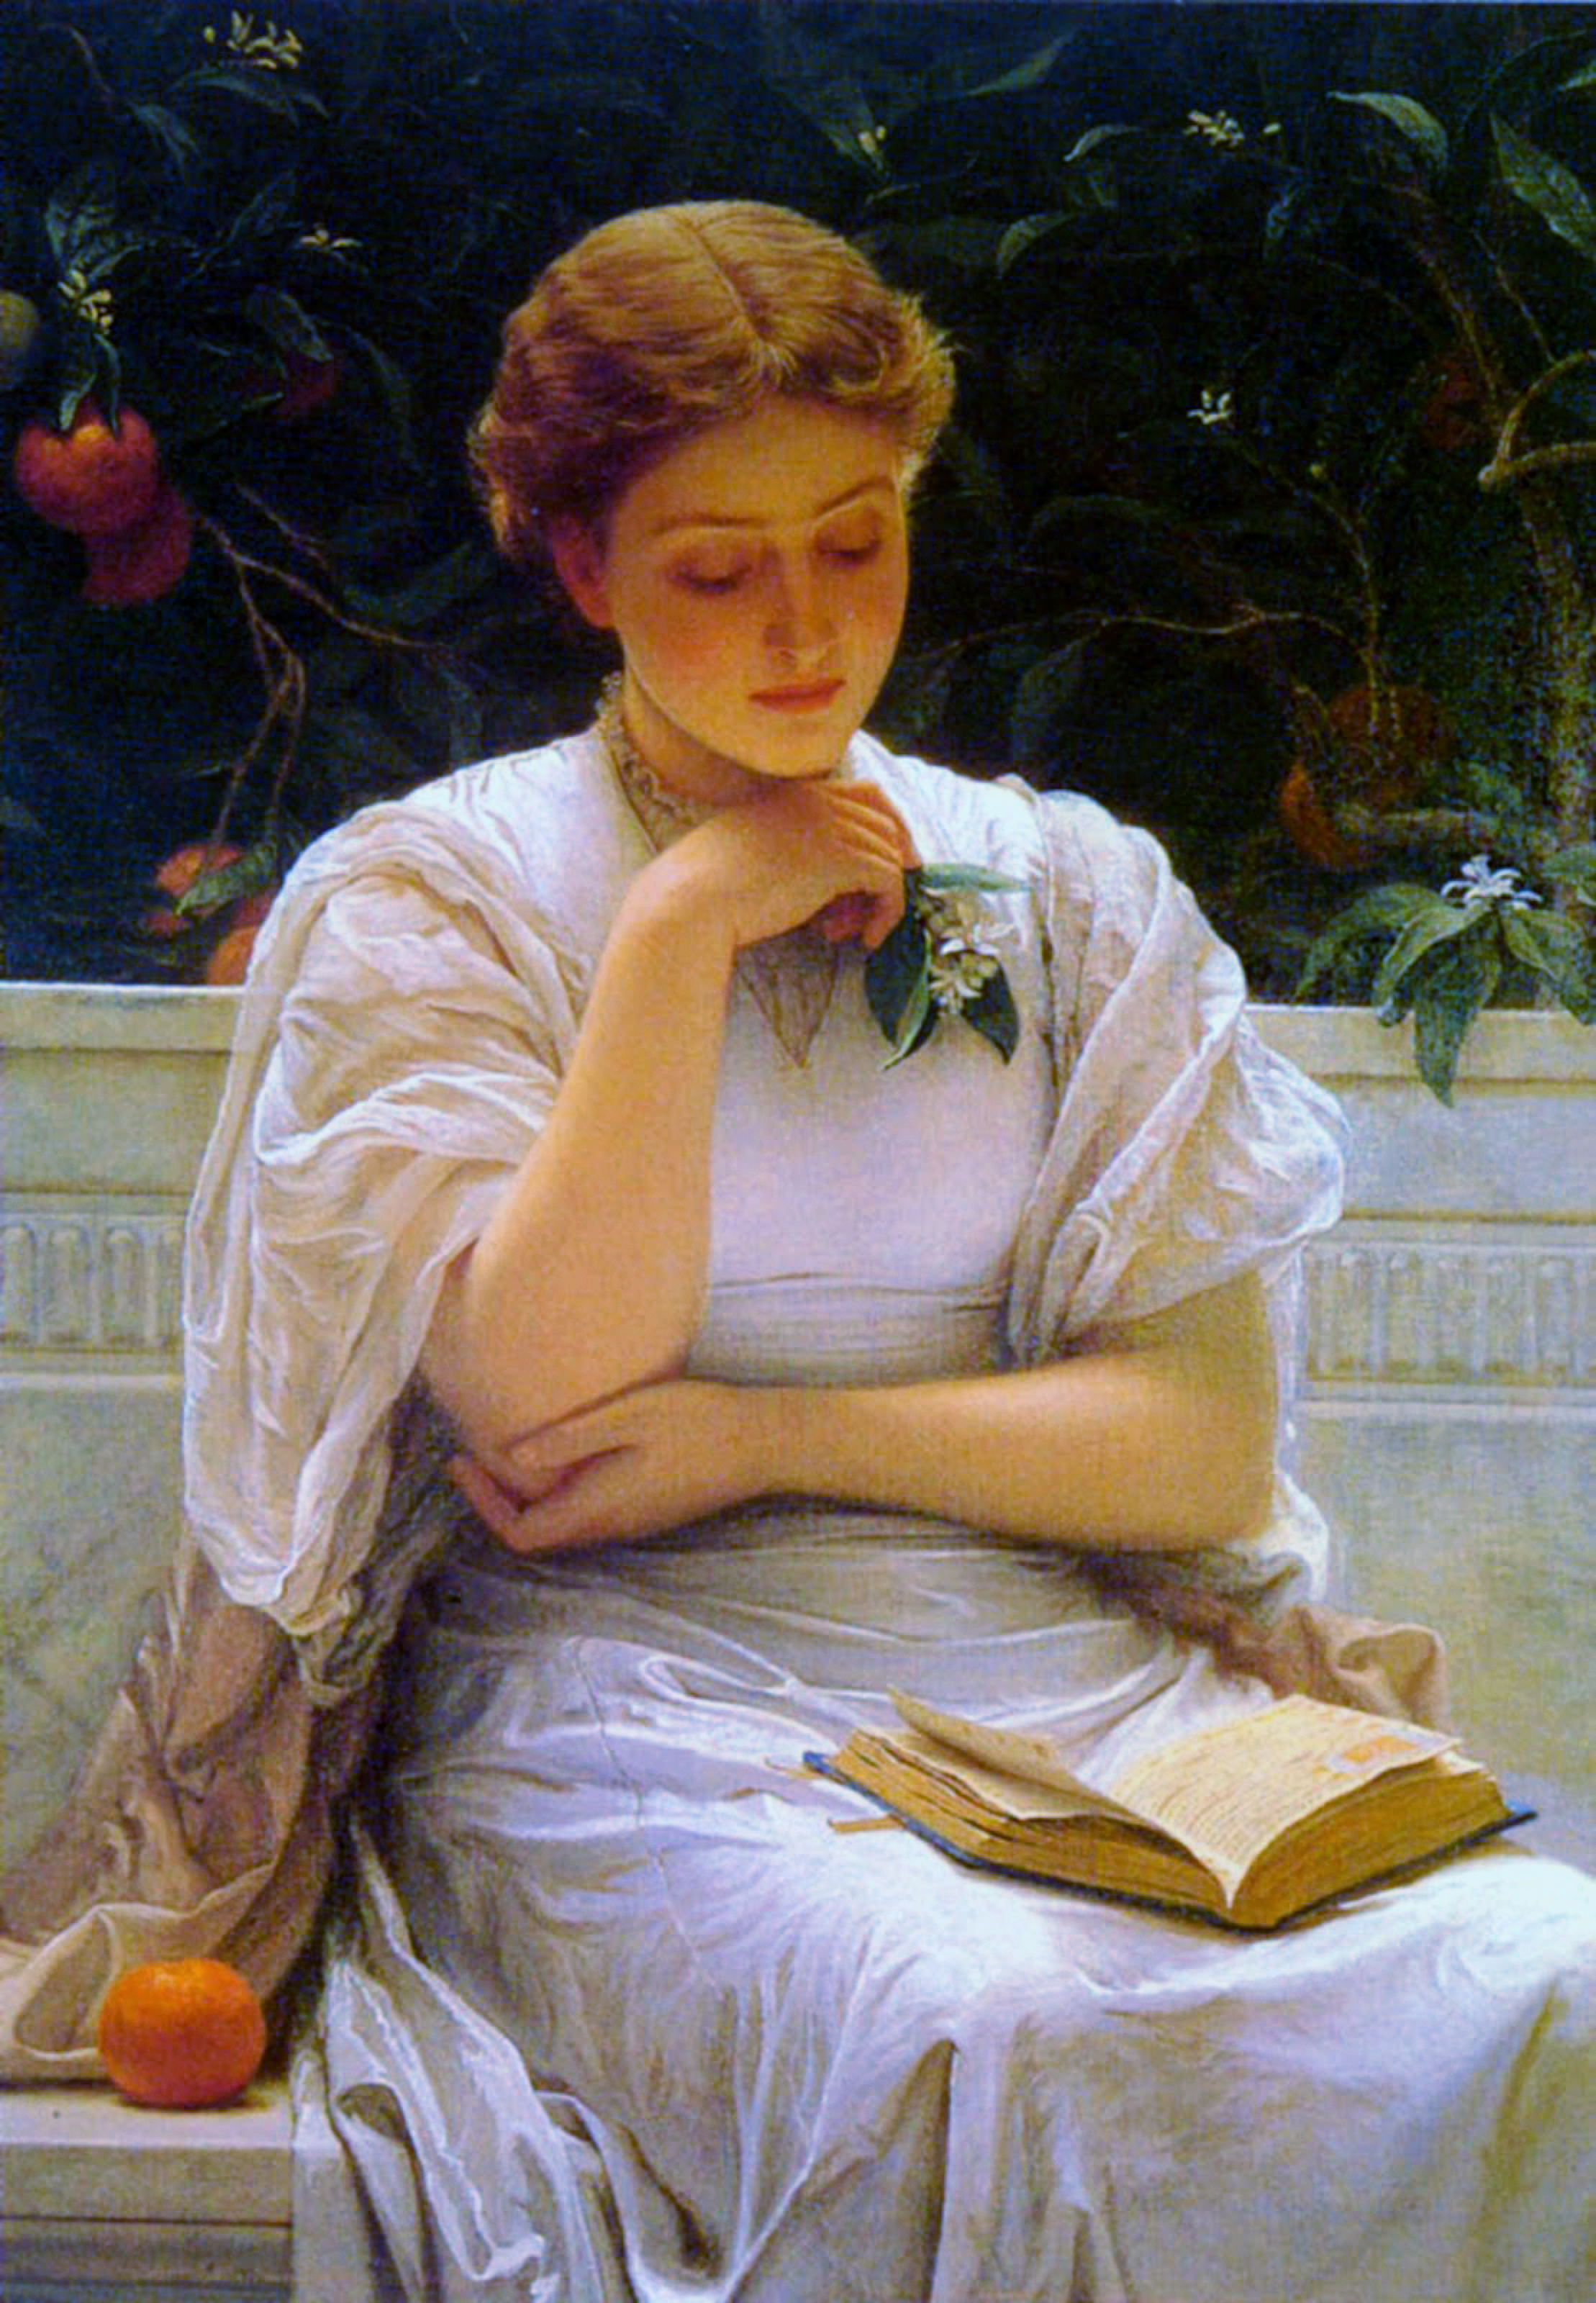 File:Girl-Reading-Charles-Edward-Perugini.jpg